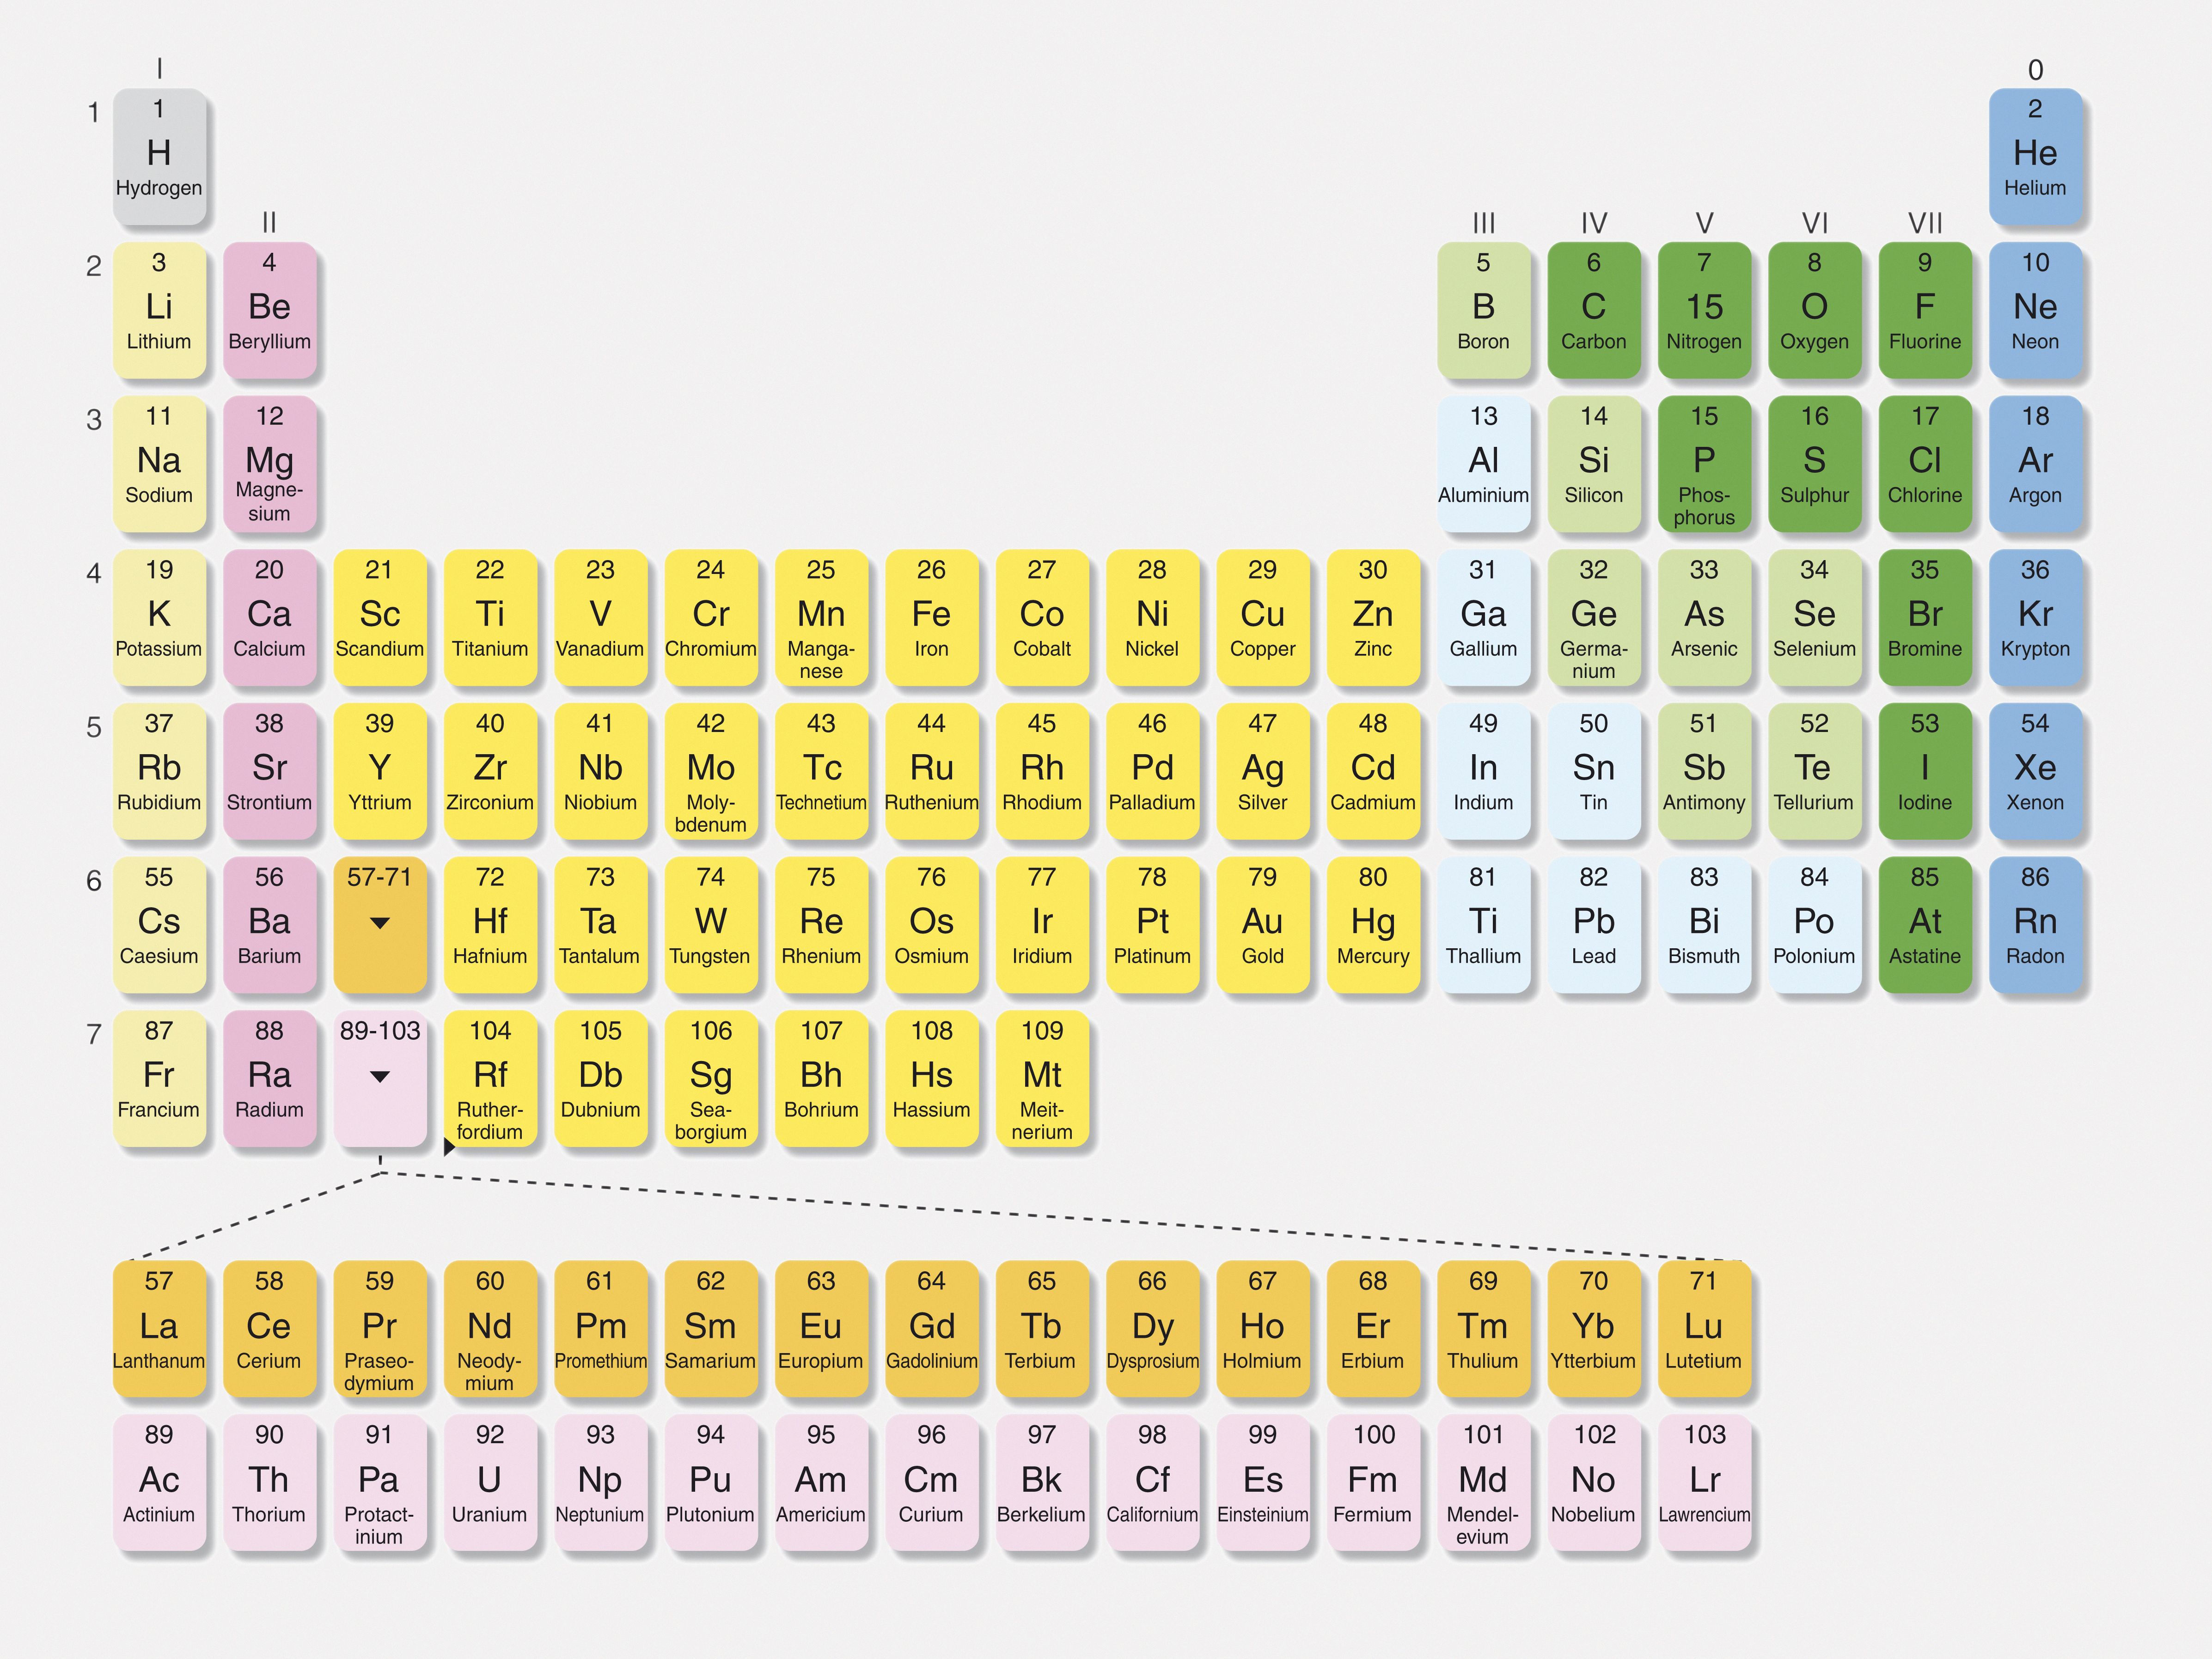 Why Are The Alkaline Earth Metals Grouped Together